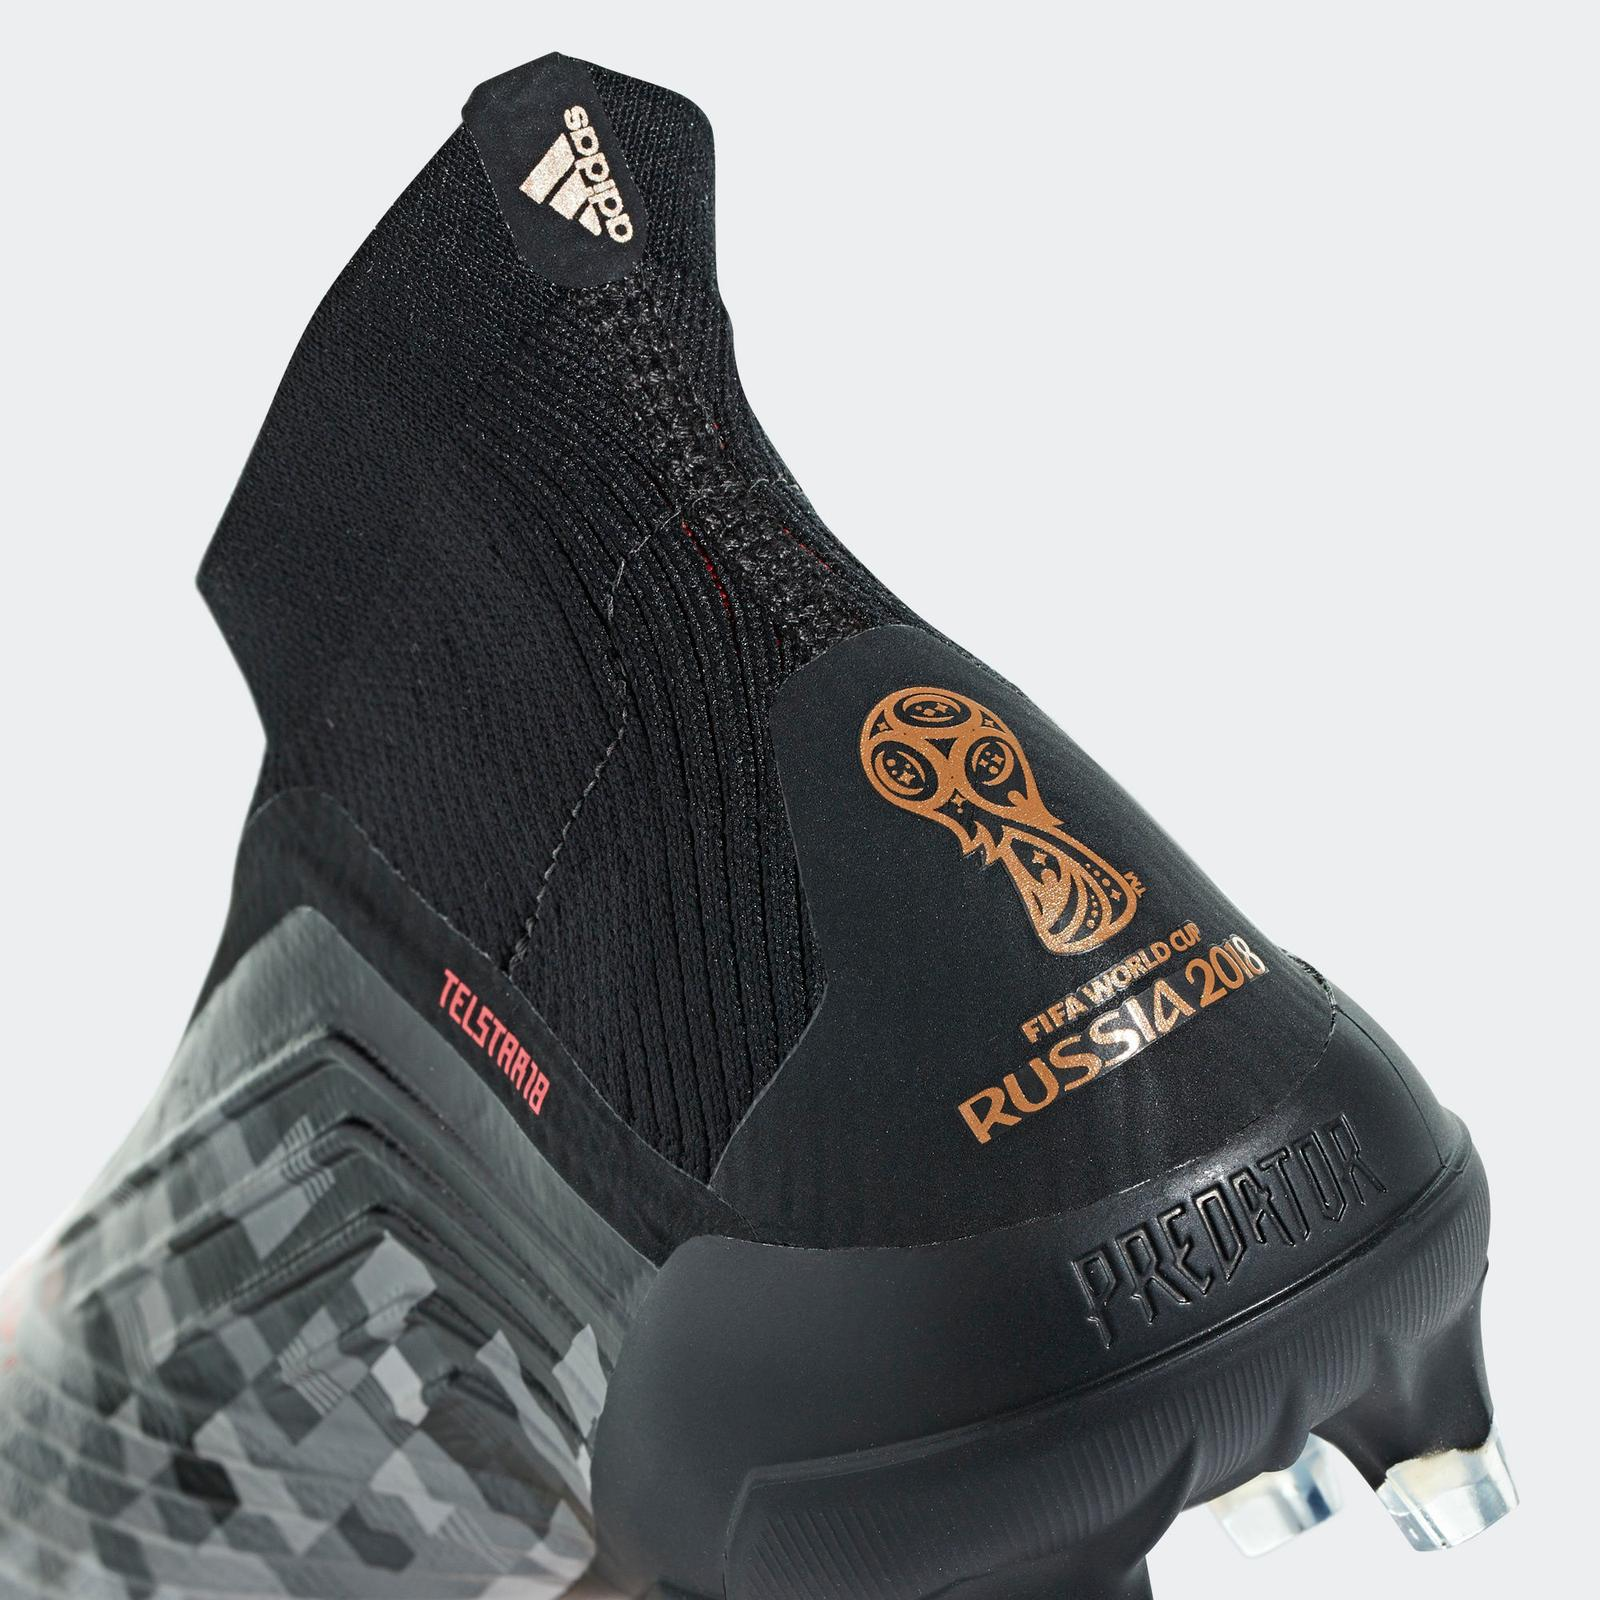 3dd5029d509 Adidas will launch a stunning new limited-edition Predator 18+ football boot  for the World Cup